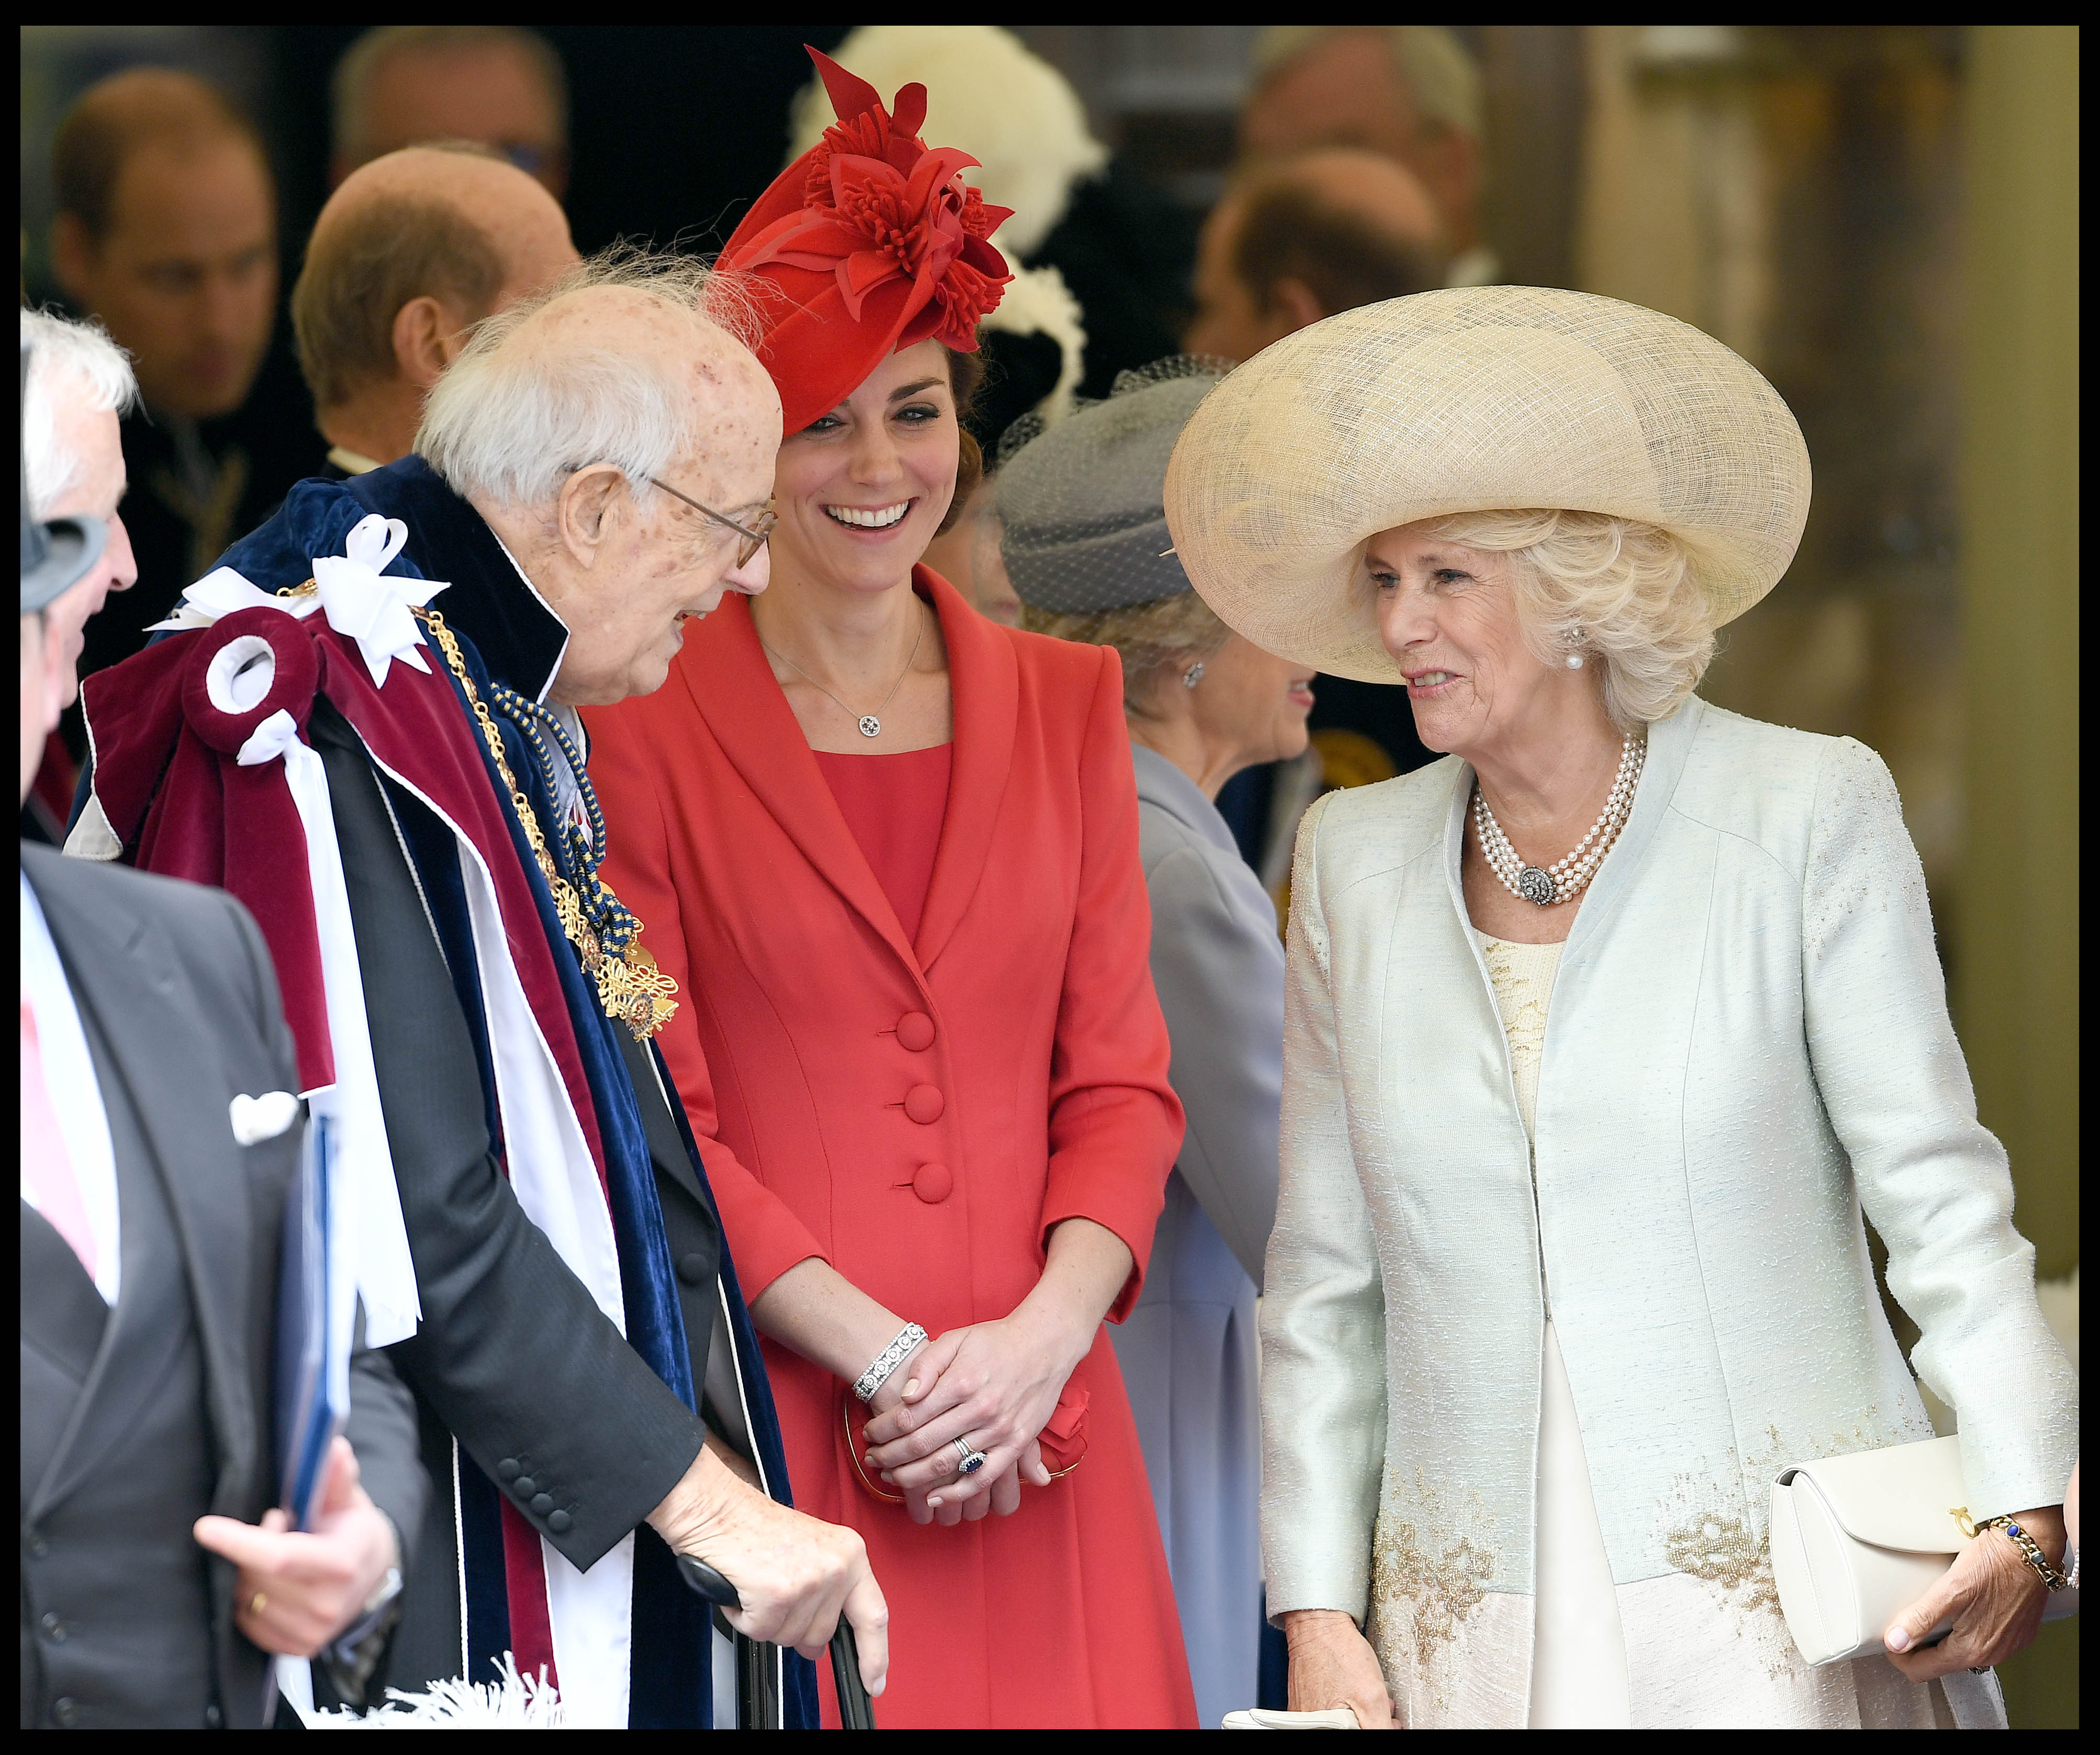 Image ©Licensed to i-Images Picture Agency. 13/06/2016. London, United Kingdom. Order of the Garter service. Duchess of Cambridge  and the Duchess of Cornwall talk to Lord Ashburton as they join HM The Queen Elizabeth II and the Duke of Edinburgh joined by other members of the Royal Family attend Order of the Garter service at Windsor Castle. Picture by Andrew Parsons / i-Images